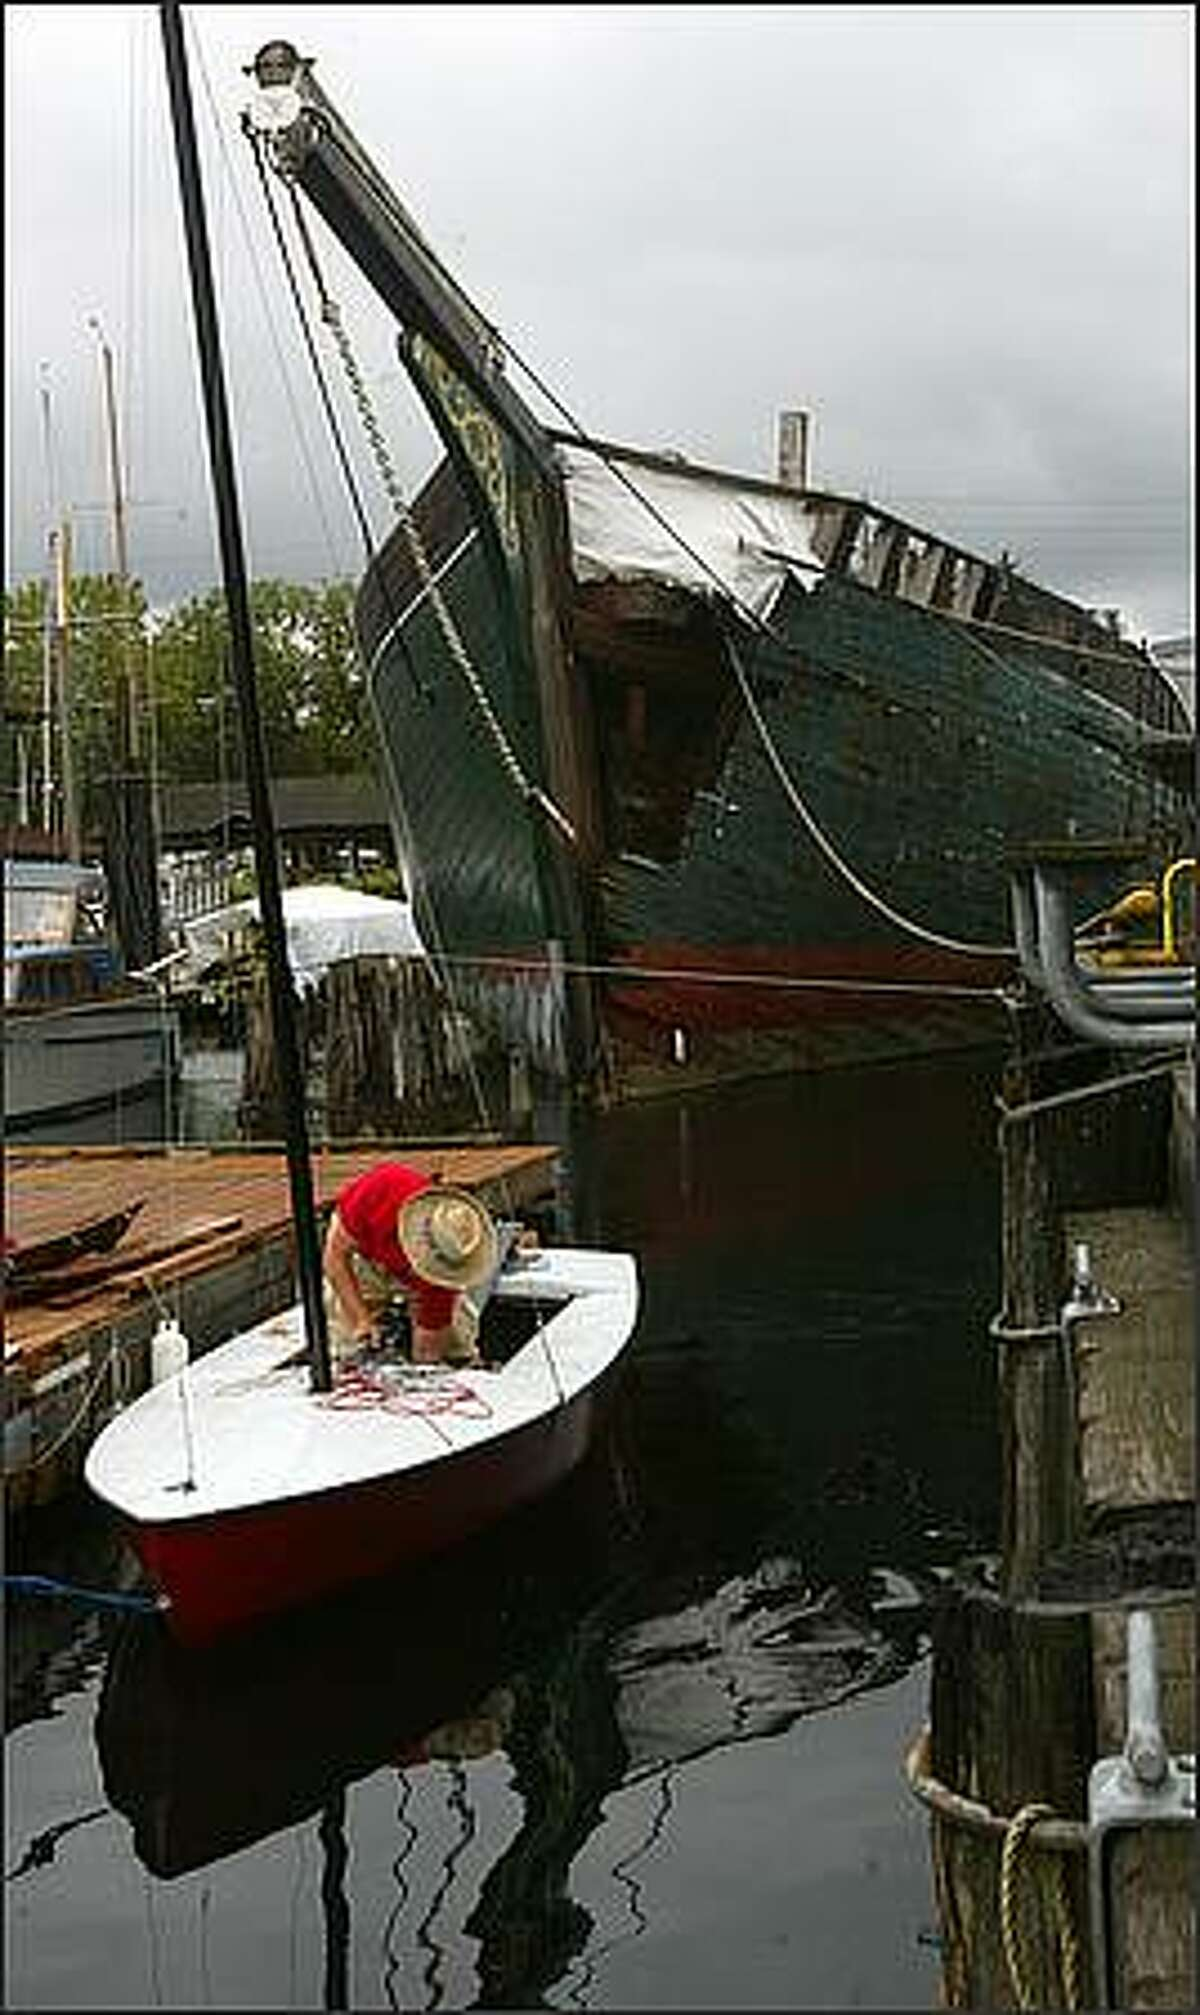 With the historic schooner Wawona moored behind him, Sterling Hines-Elzinga, 14, an intern at the Center for Wooden Boats, cleans his sailboat at South Lake Union Monday, Aug. 20, 2007.